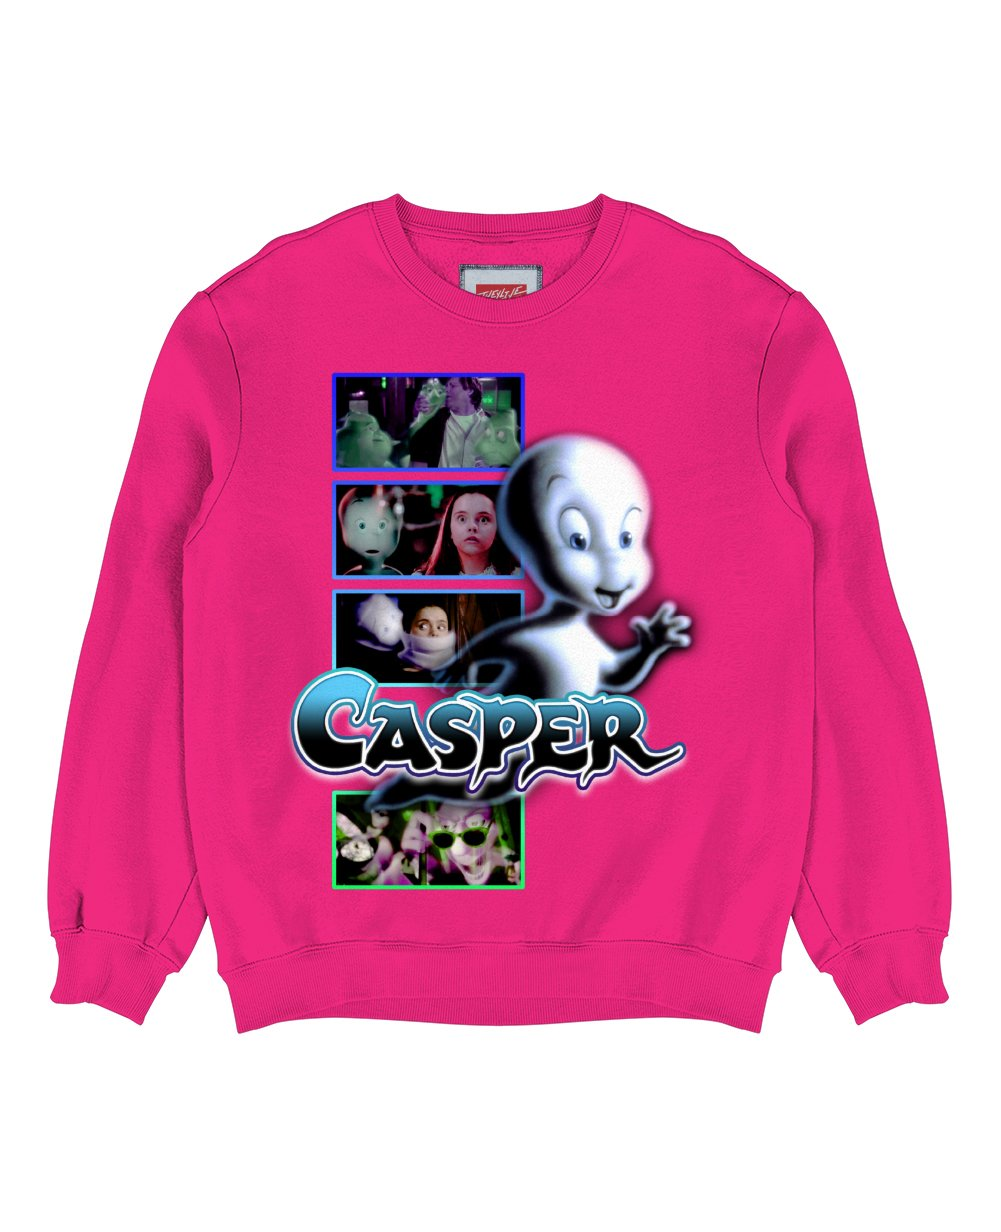 Casper Print Sweatshirt in Fresh Pink